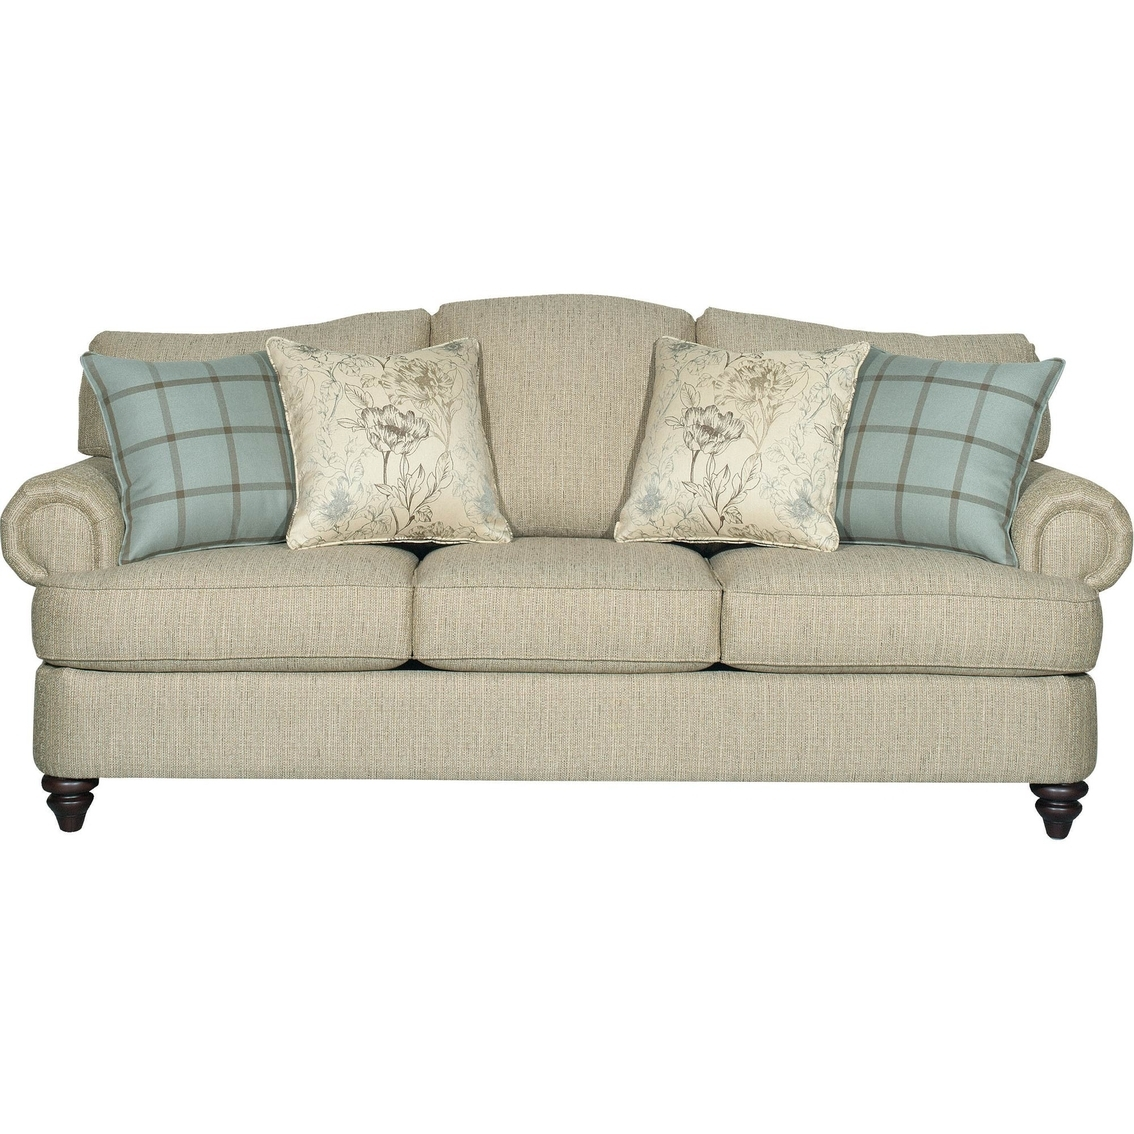 Bassett Xpress2u Barclay Sofa Sofas Couches Home For Bassett Sofa Bed (Image 3 of 15)